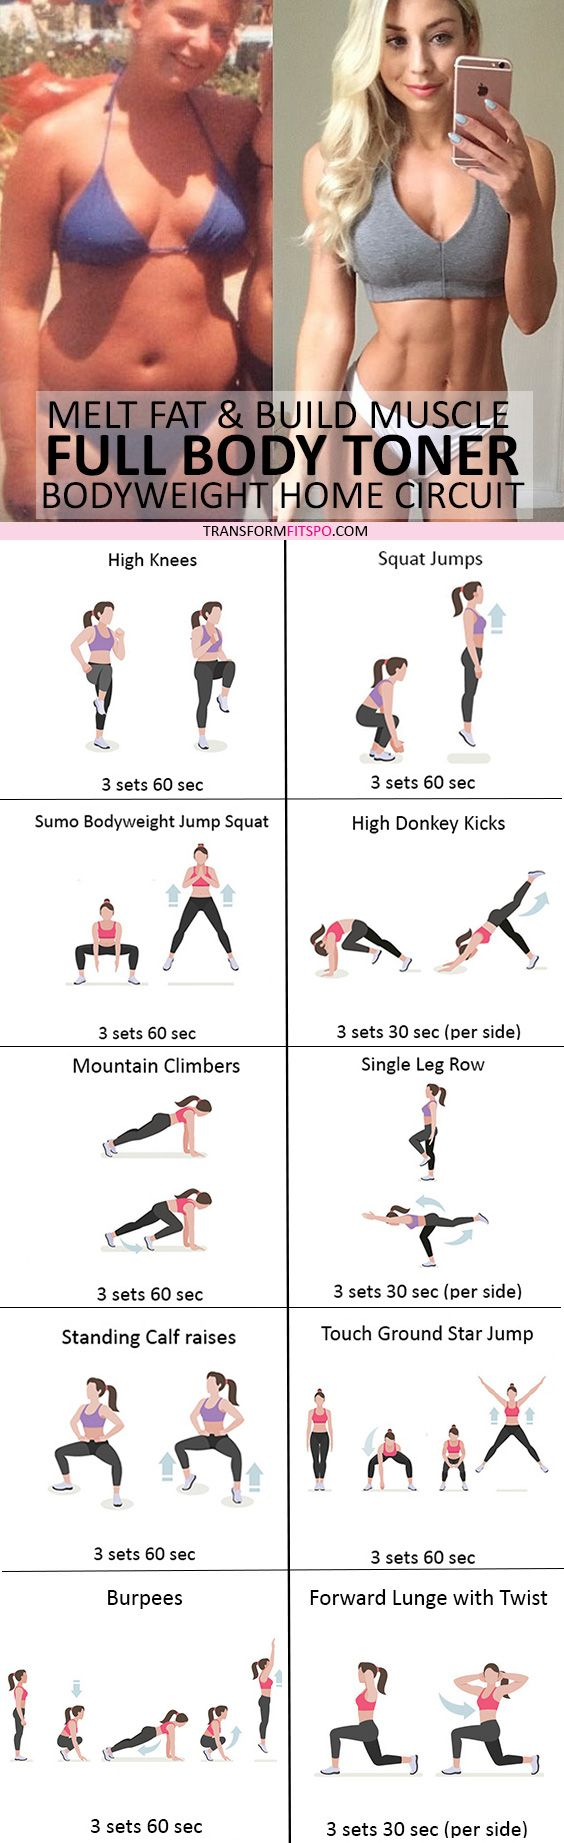 #womensworkout #workout #femalefitness Repin and share if this workout got your toned all over! Click the pin for the full workout.